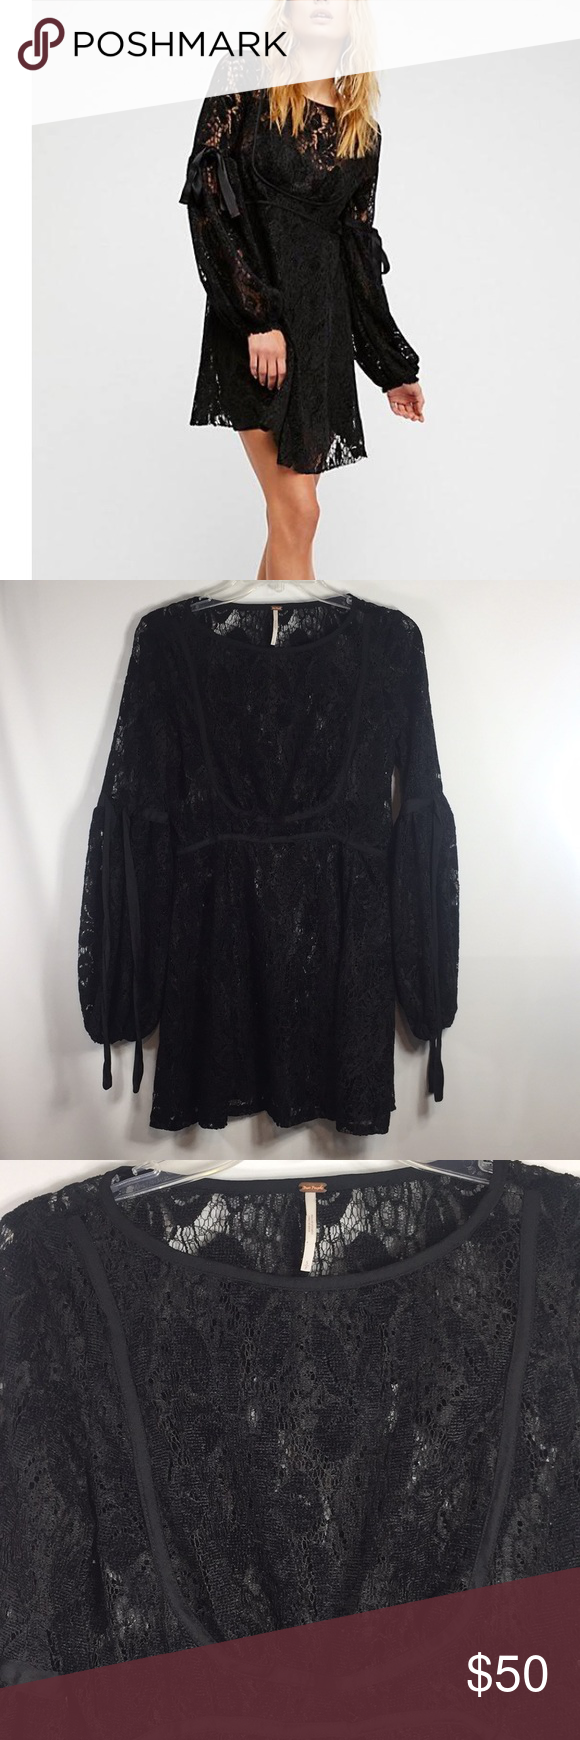 310472d1e756 Free People Ruby Crochet Lace Mini Dress Brand new with tags Women s Size  Small Color Black